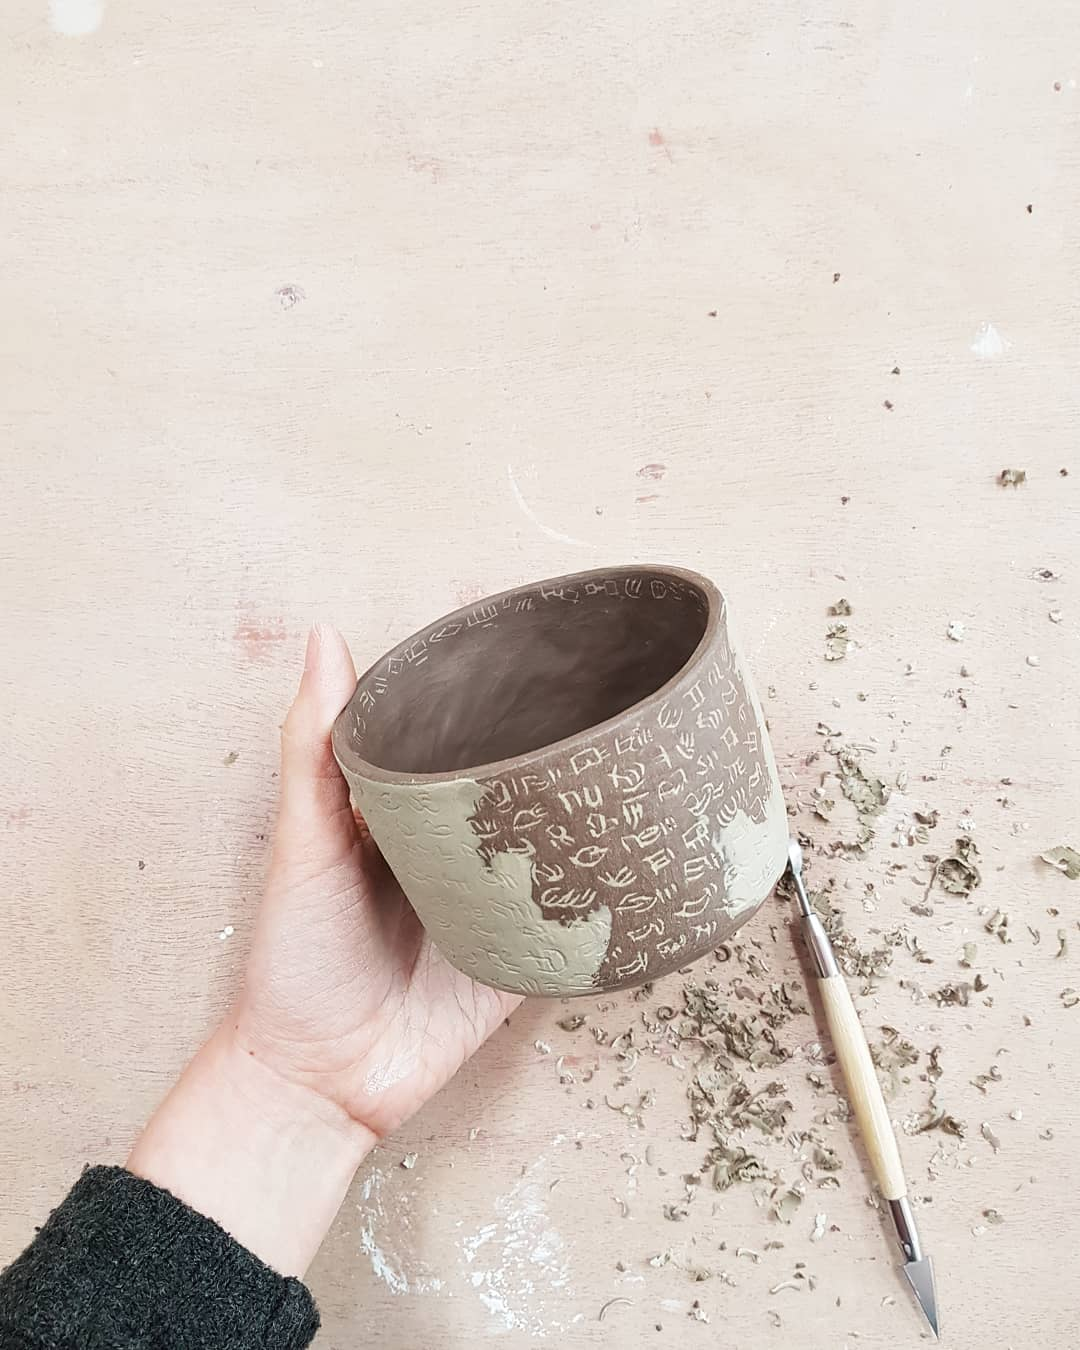 I love the feeling of scraping back the top layer of slip to reveal a pattern underneath..handbuiltpottery